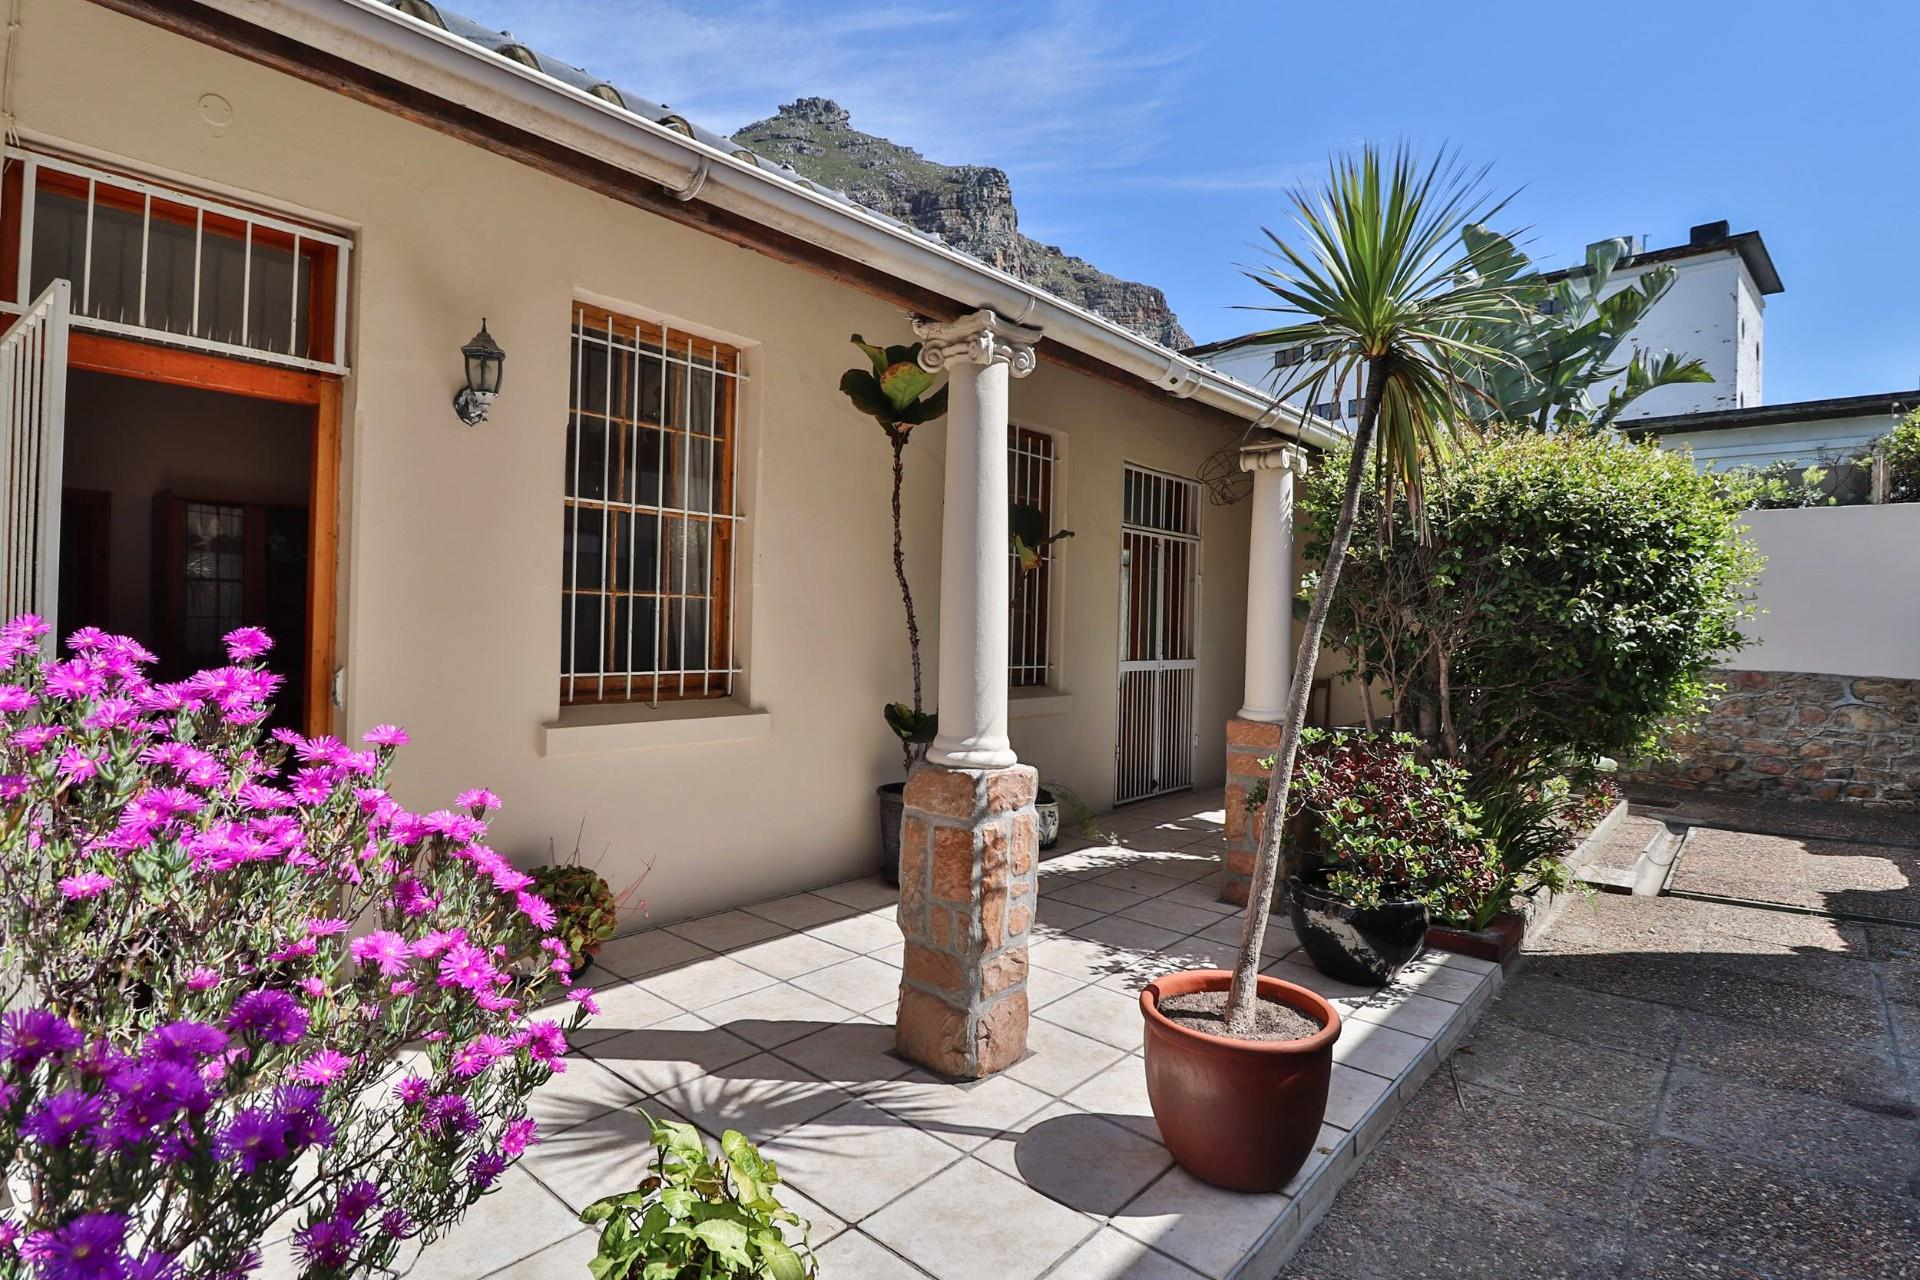 6 Bedroom House For Sale in Muizenberg